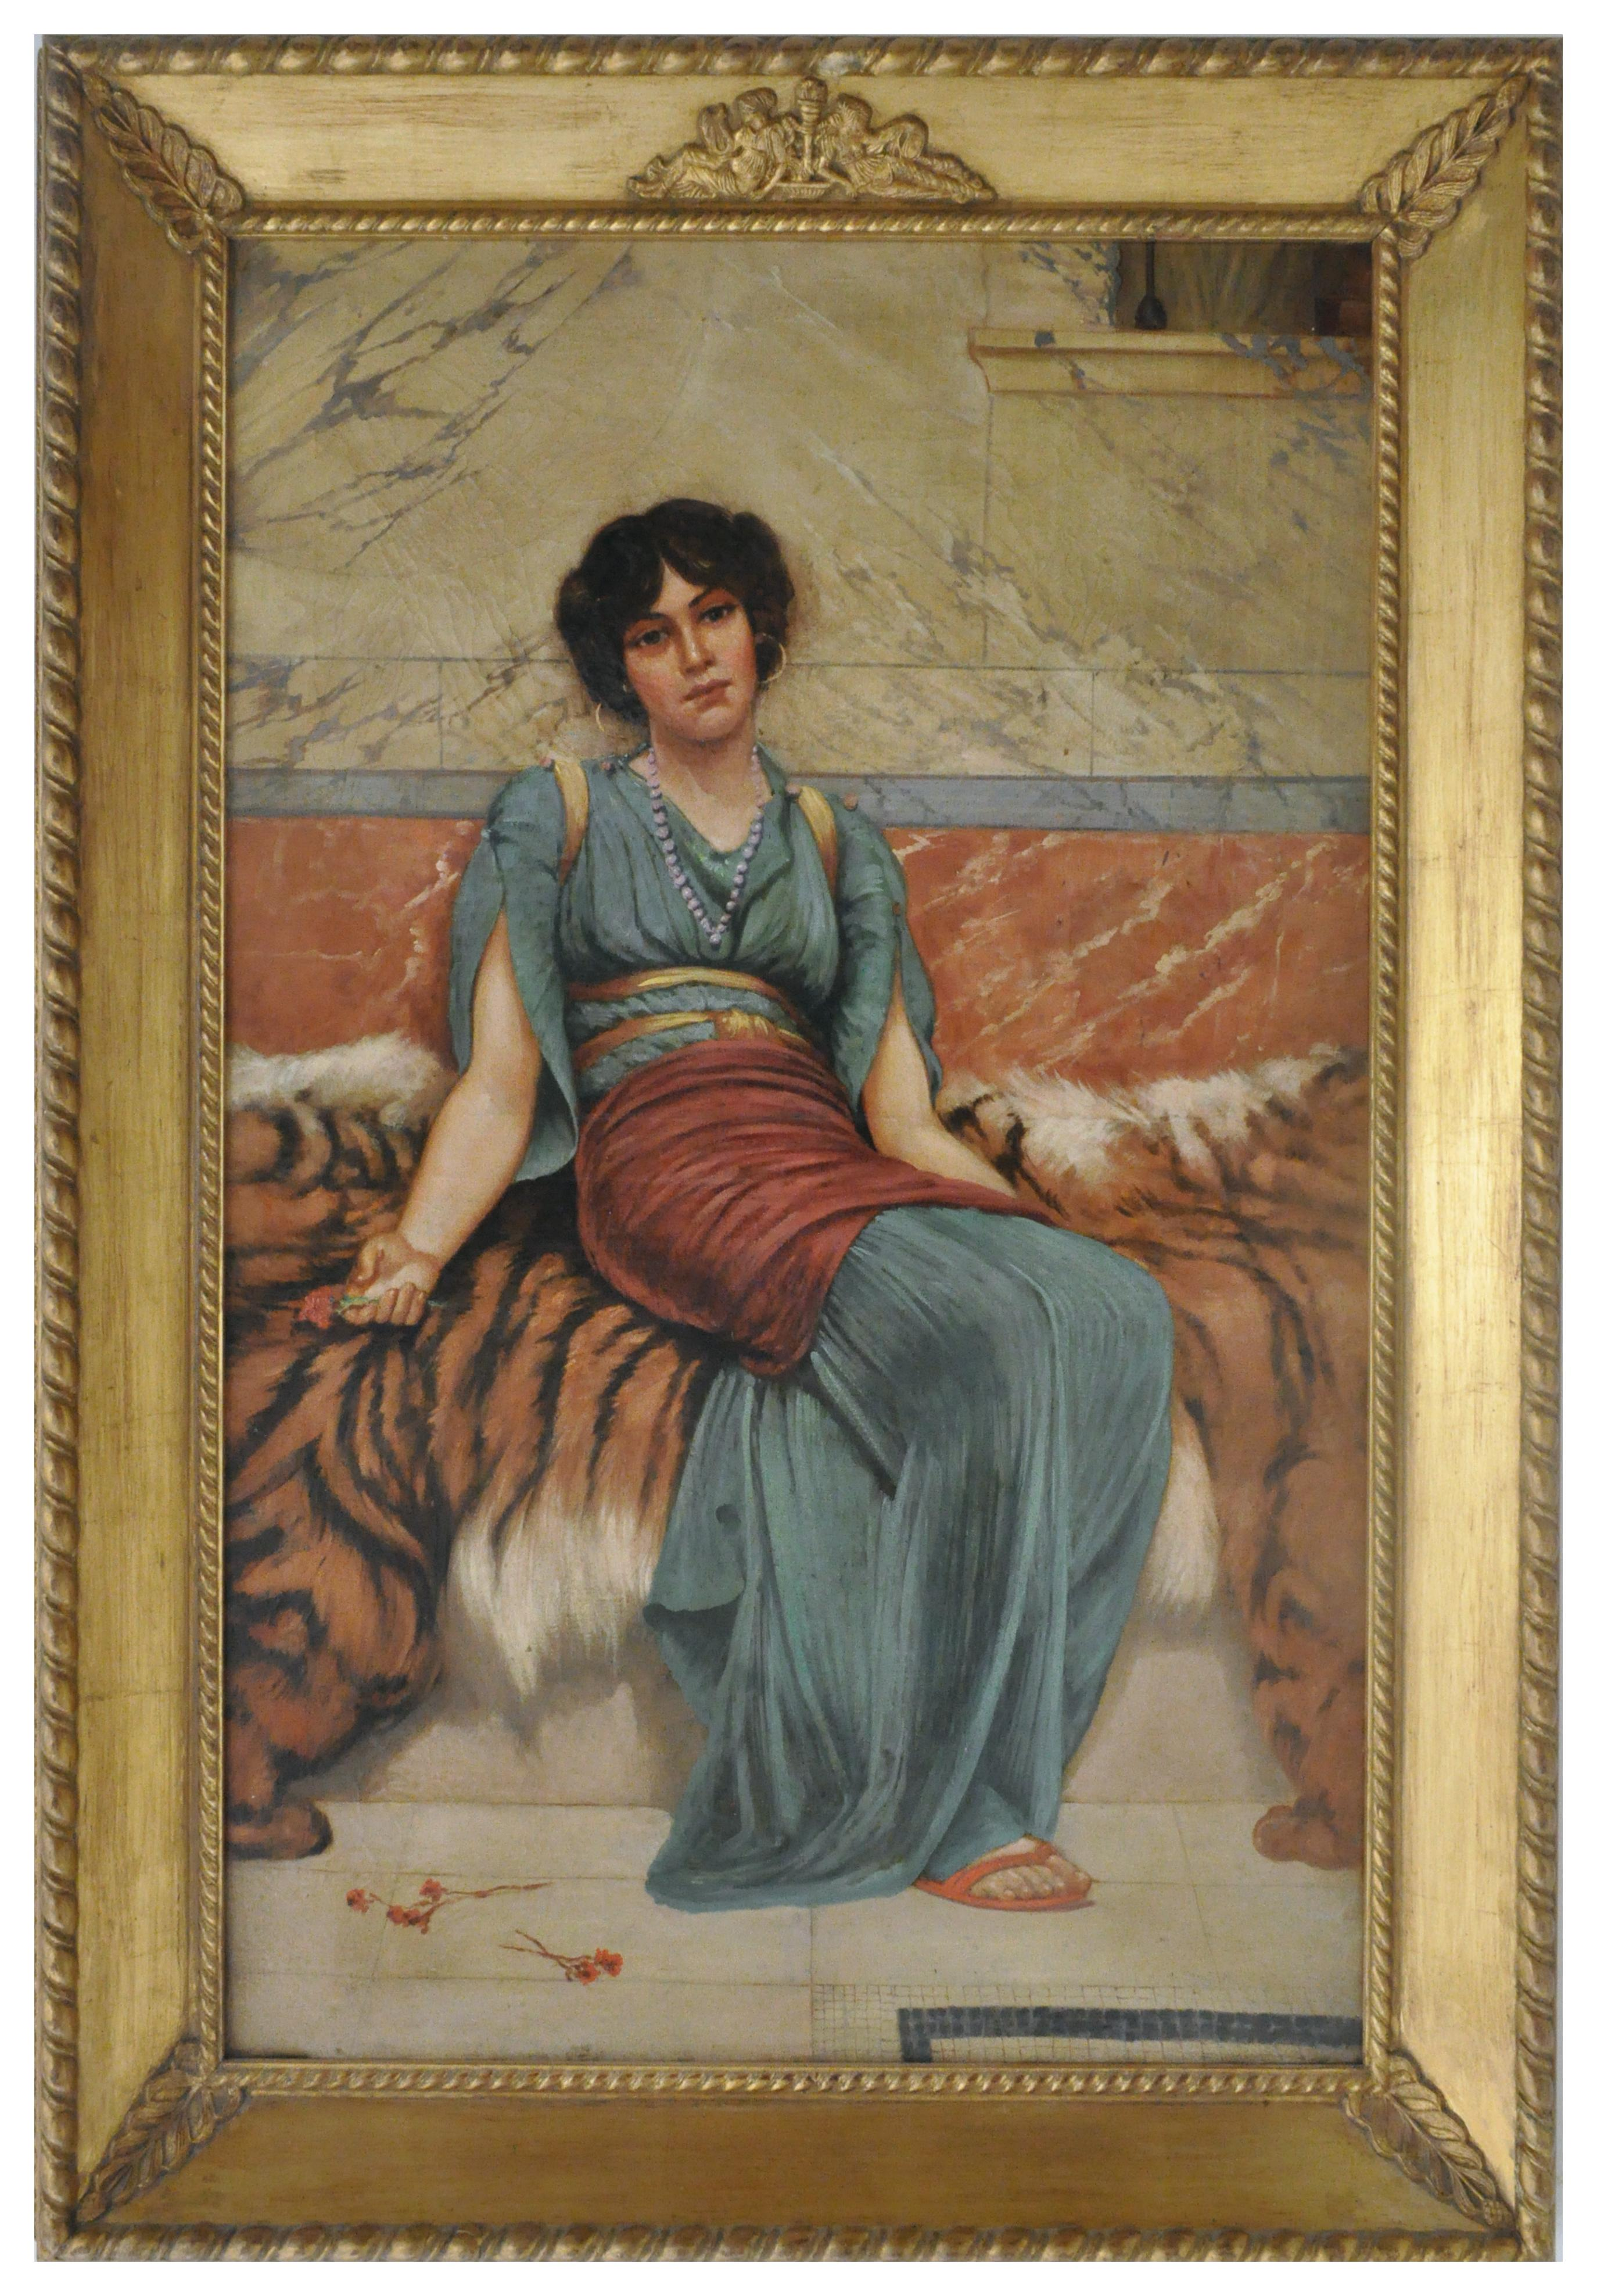 NEOCLASSICAL FIGURE -In theManner of J. W. Godward Italy  Oil on canvas painting